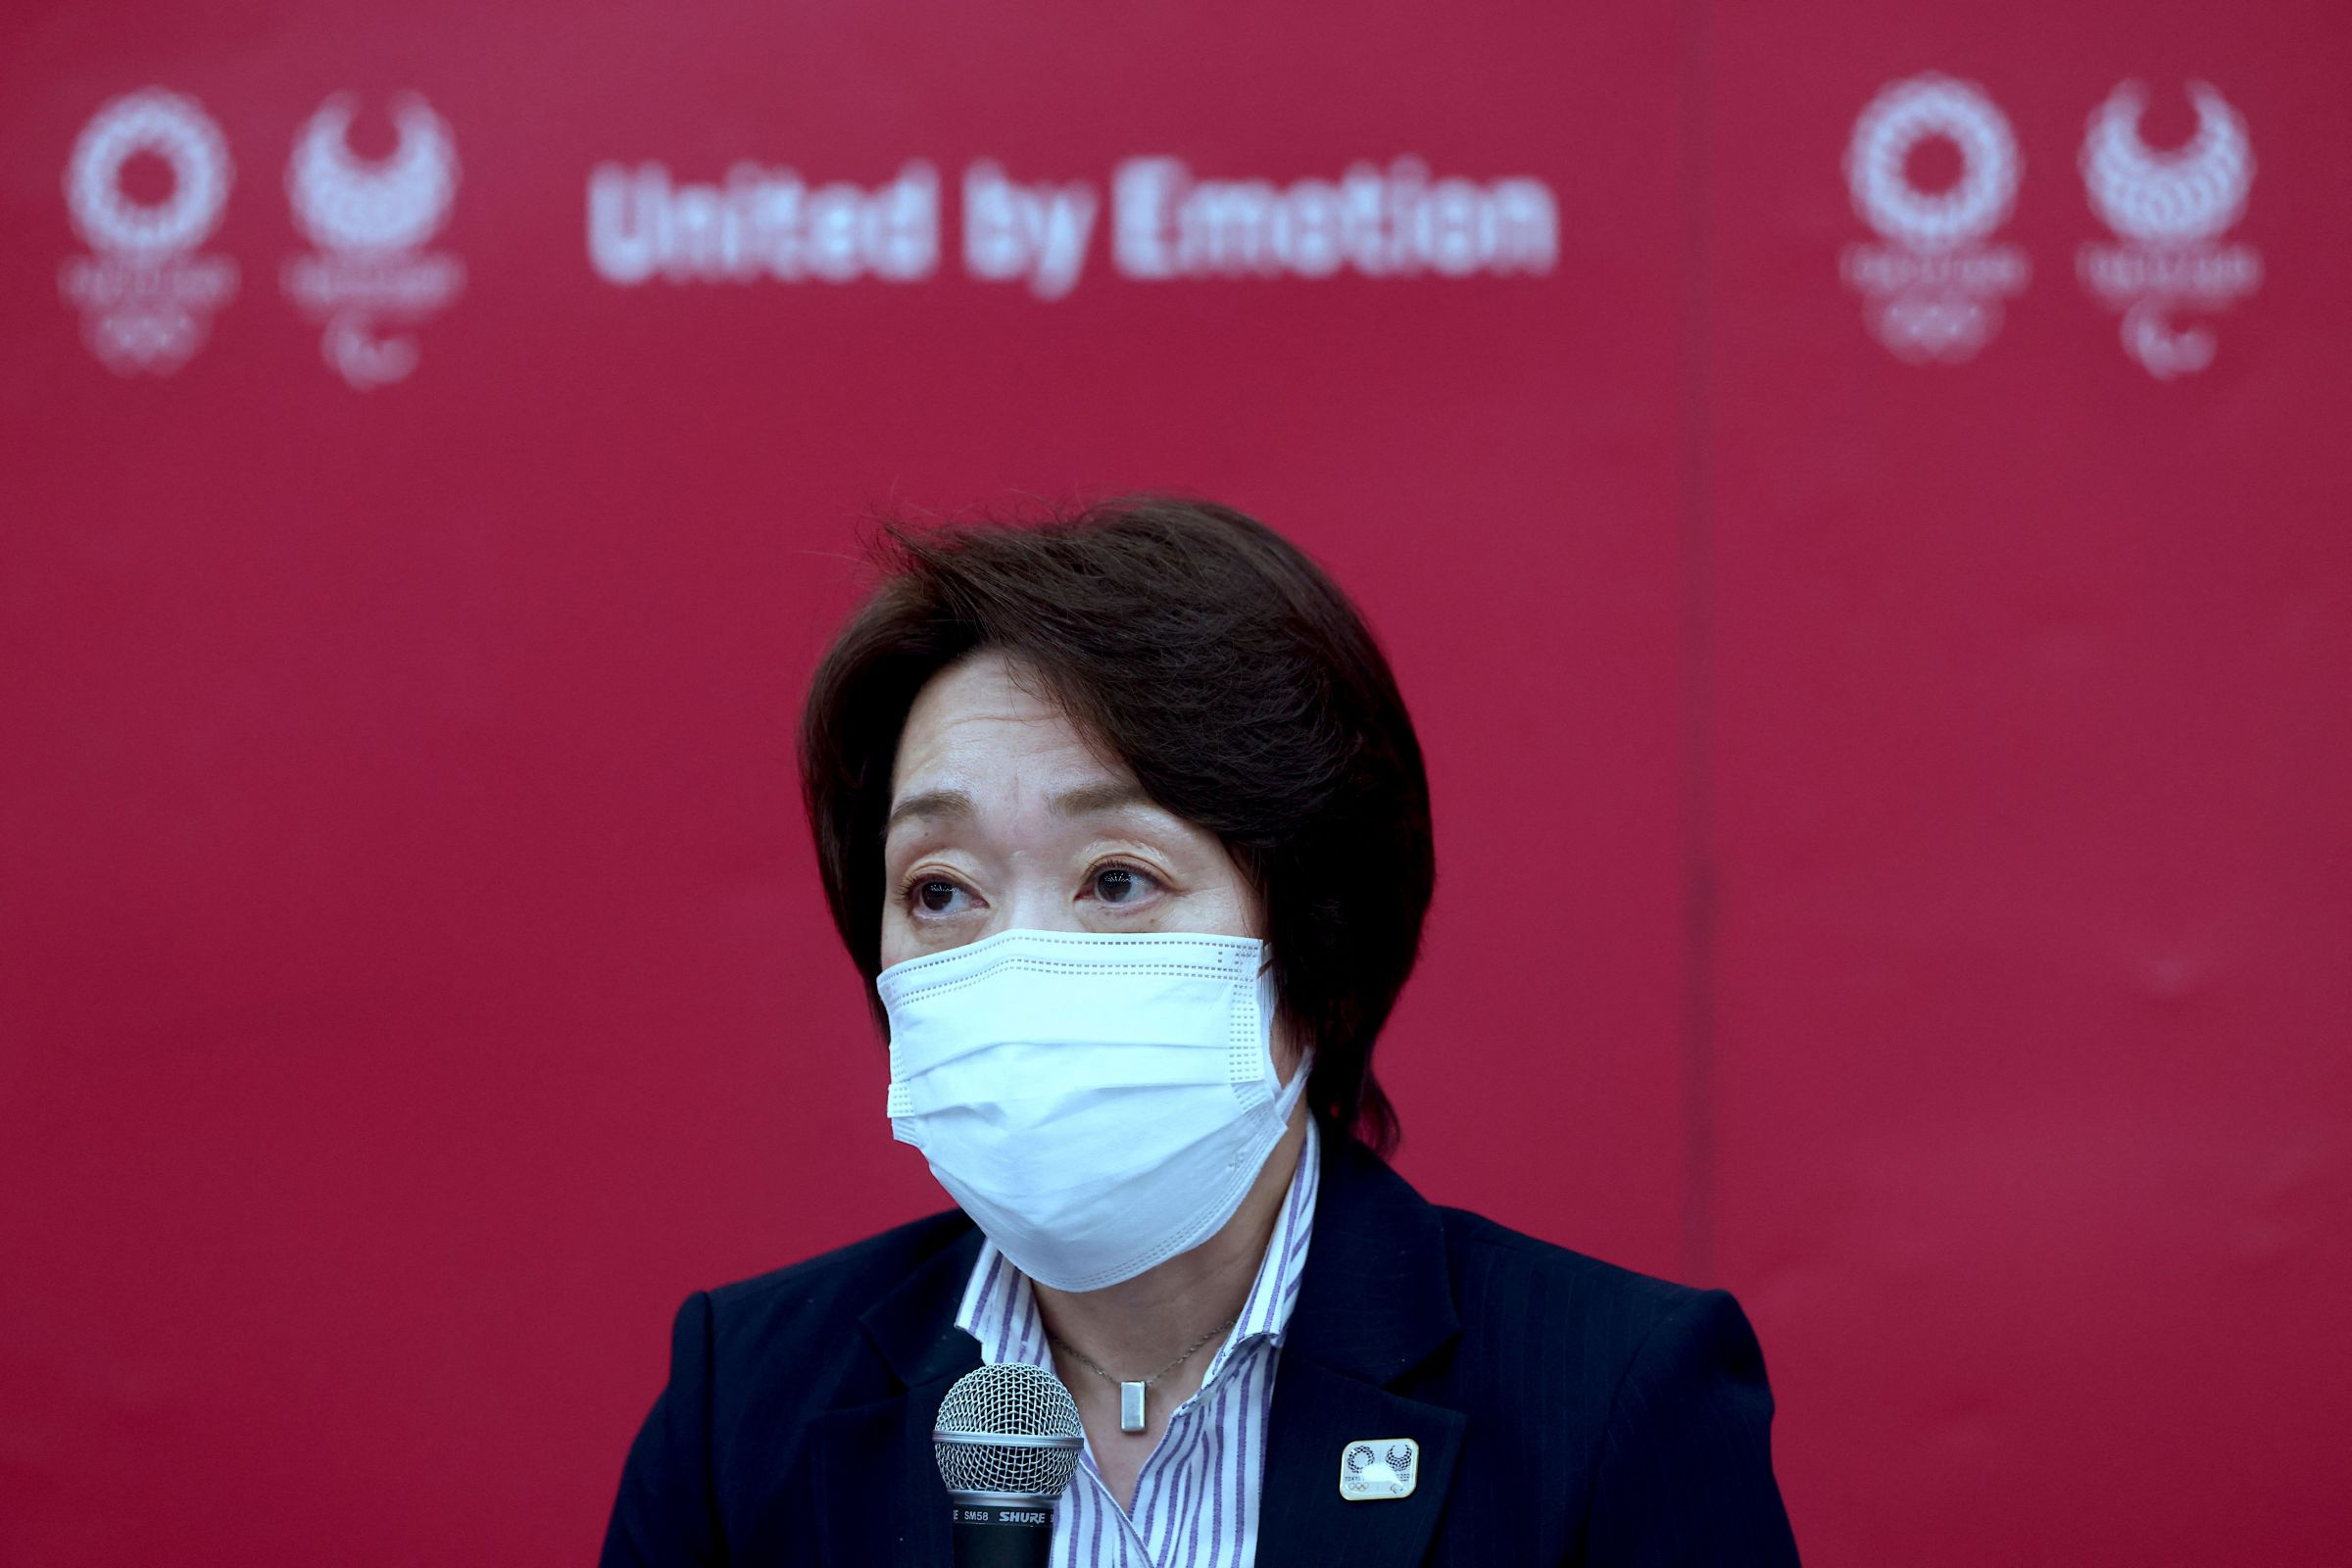 Tokyo 2020 Olympics Organising Committee president Seiko Hashimoto speaks during a press conference in Tokyo on July 8, 2021.